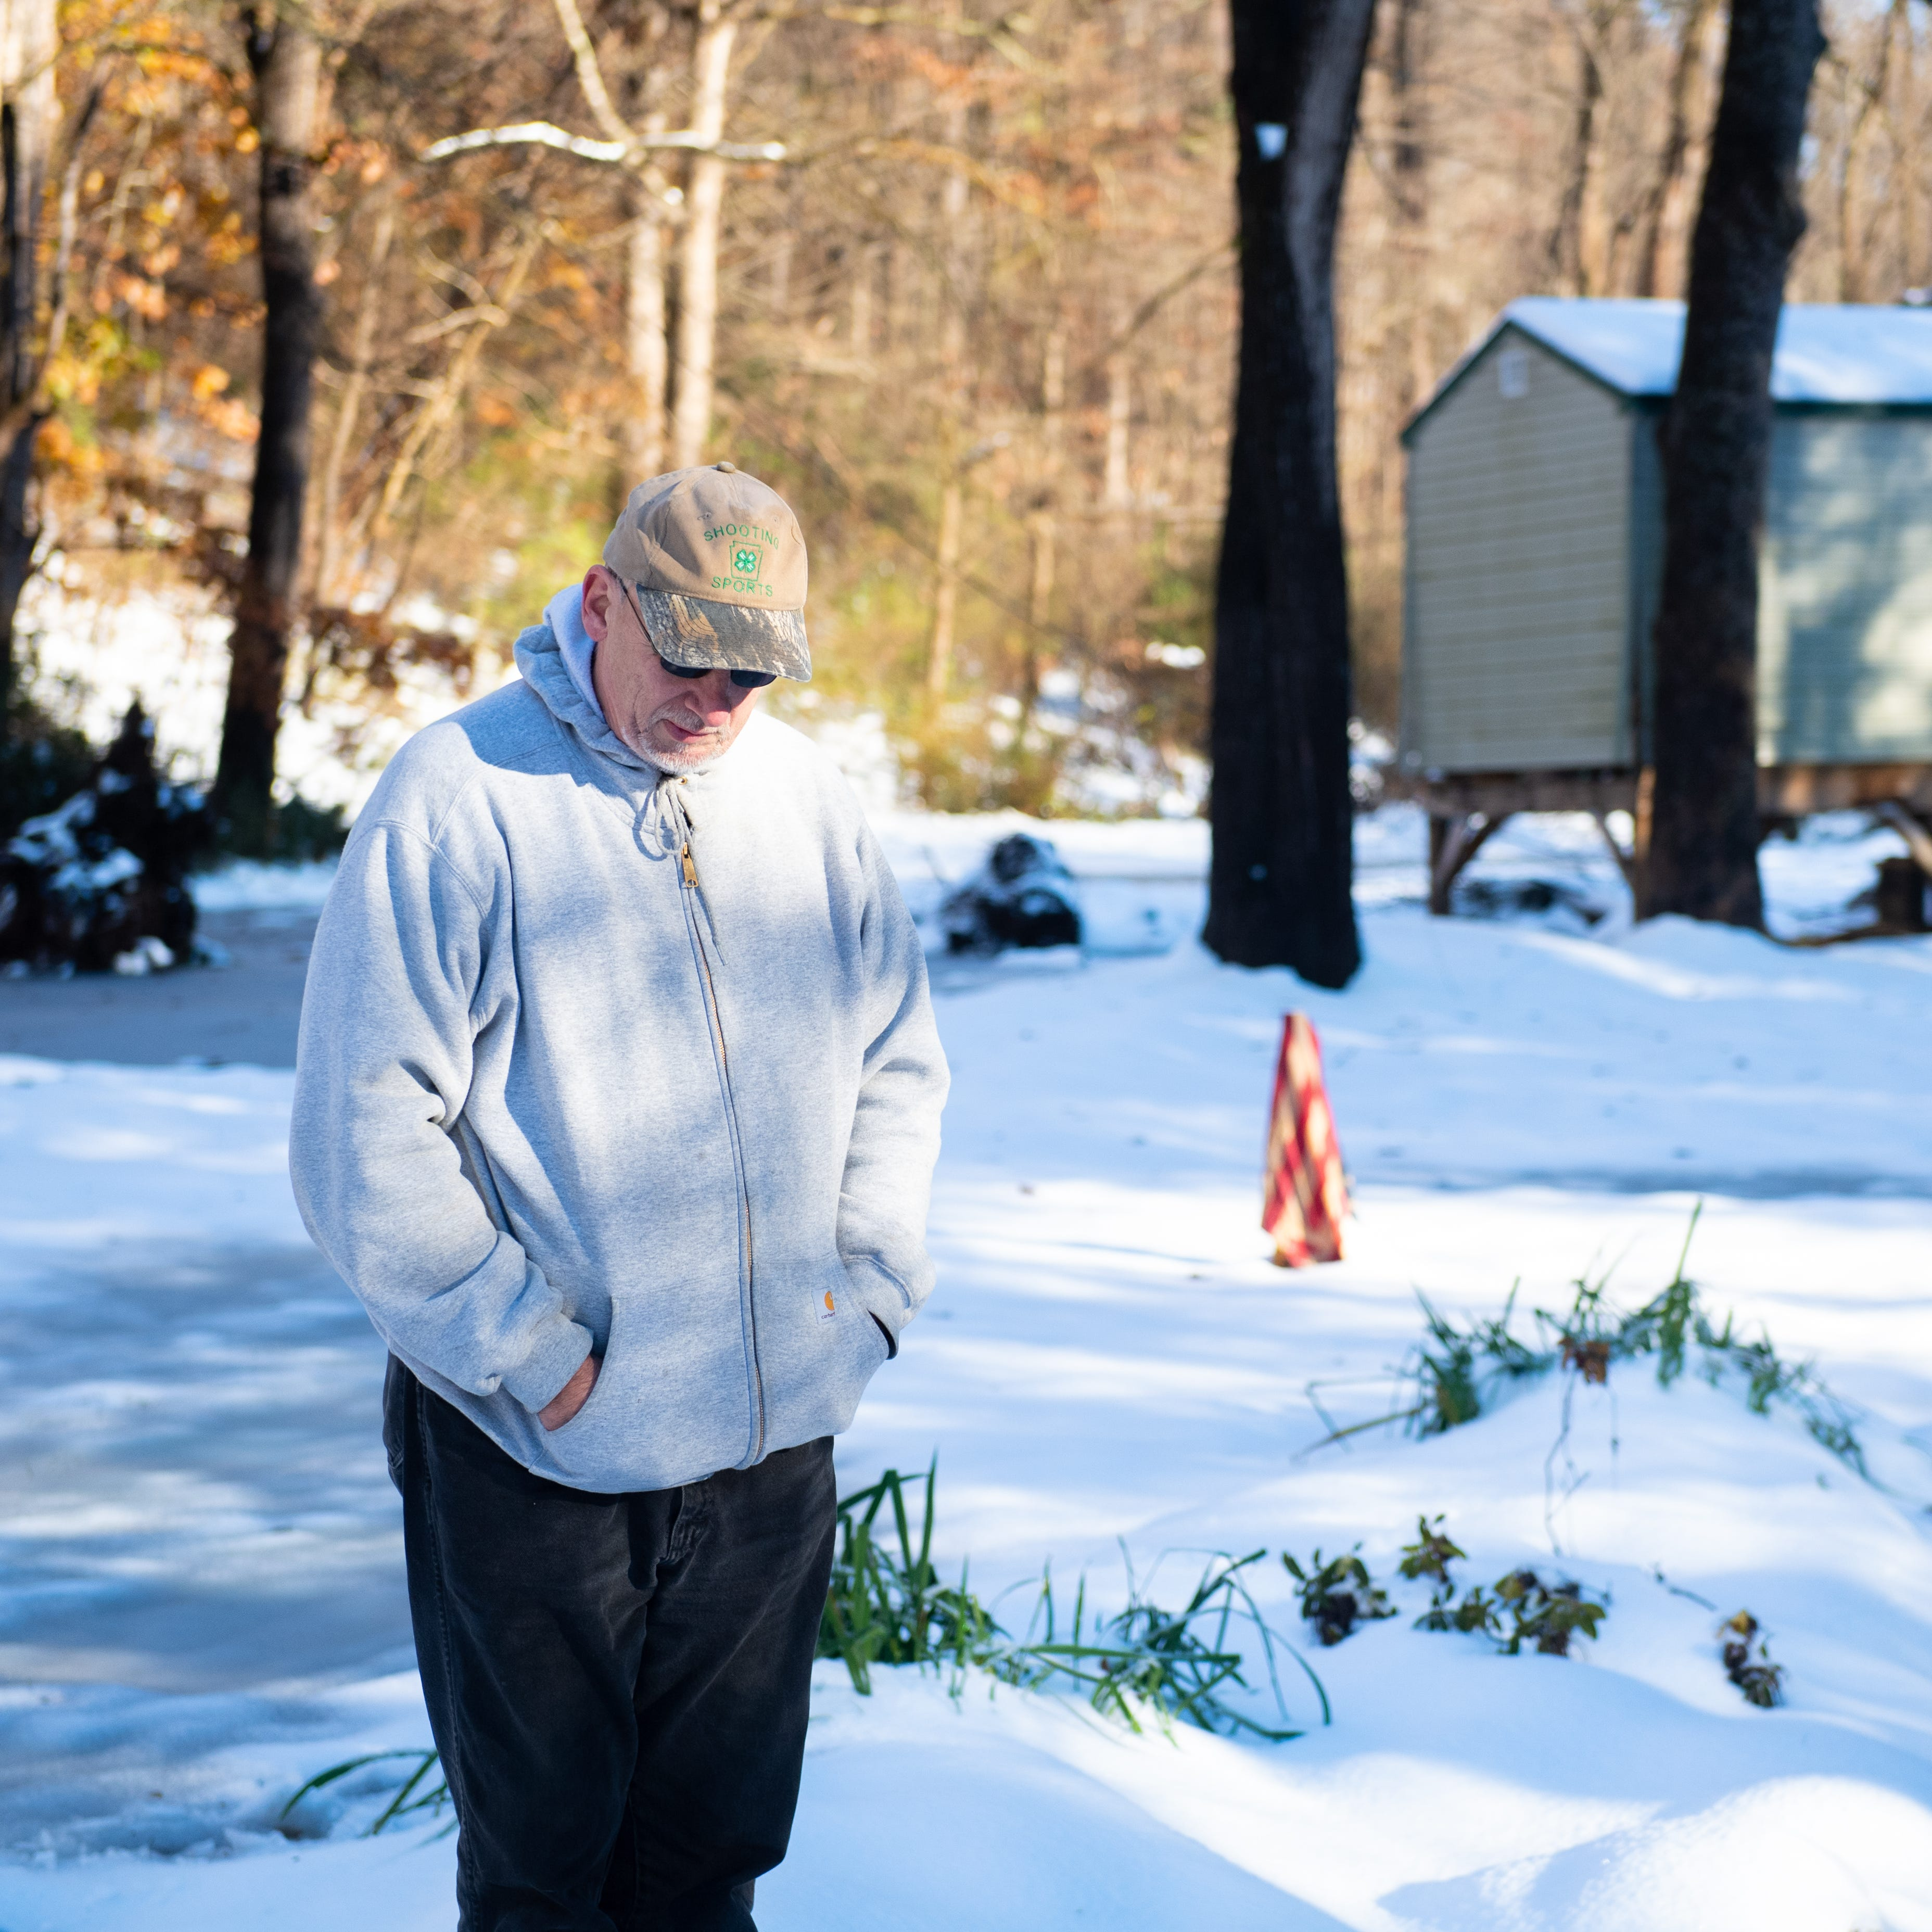 Photos: See Otter Creek flooding damages 3 months later